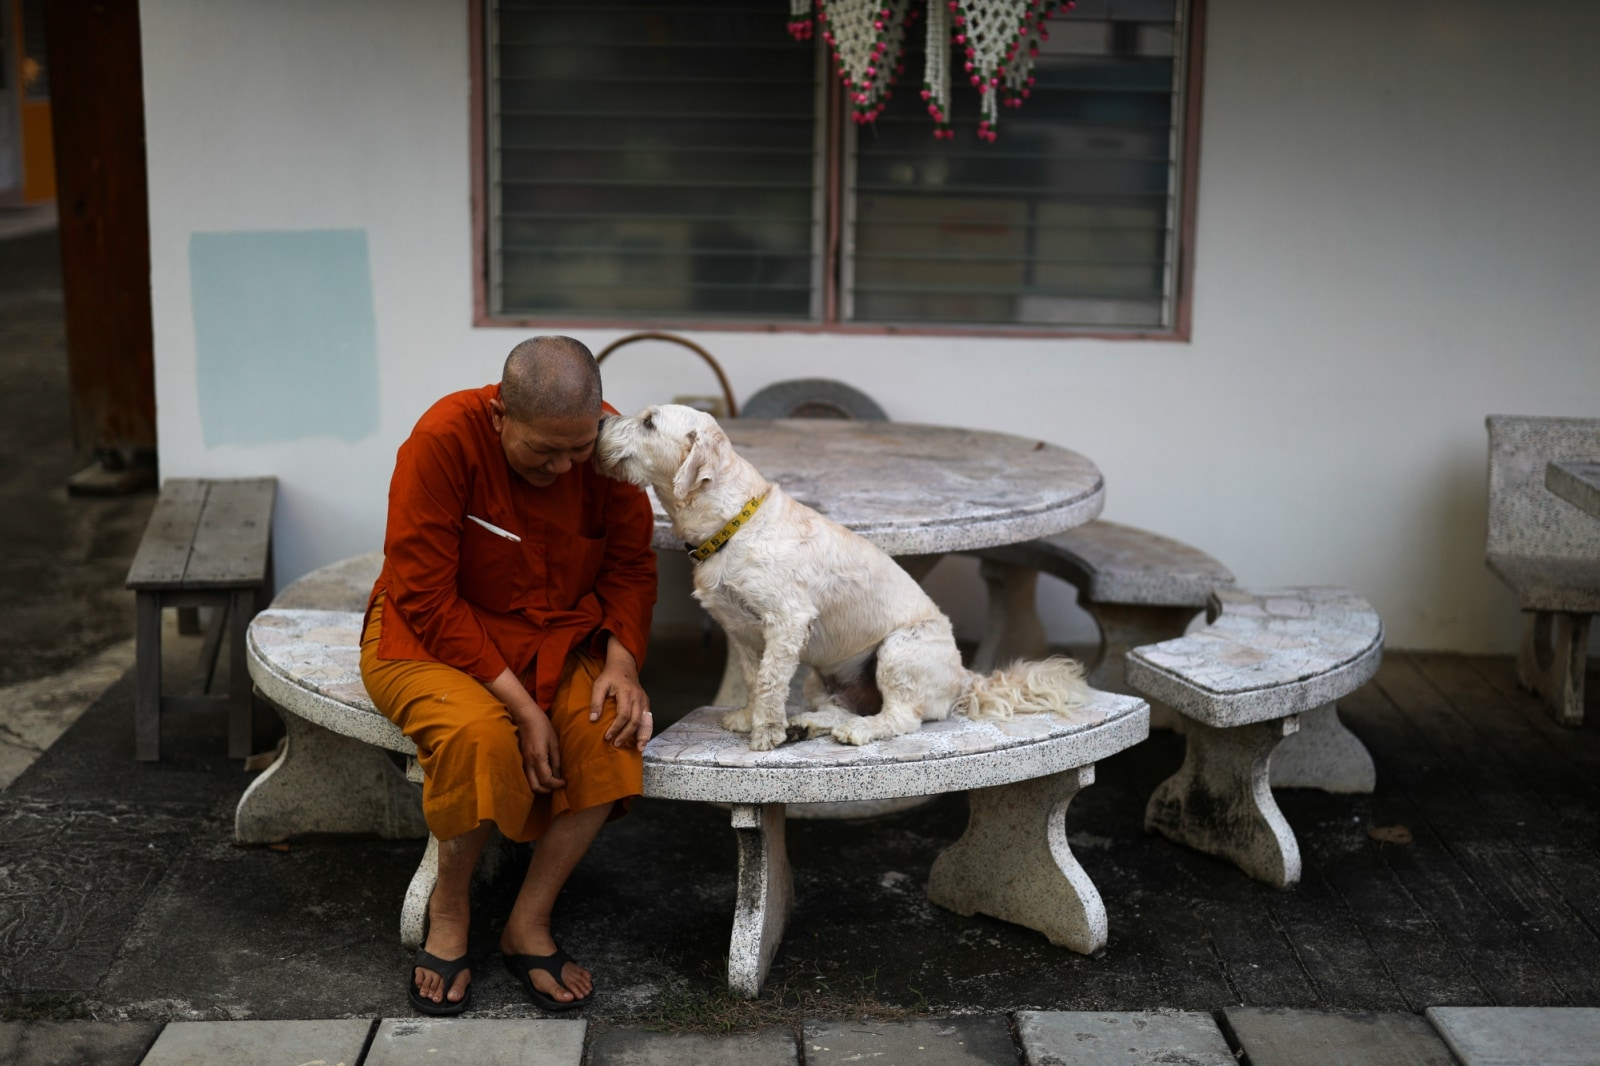 Dhammananda Bhikkhuni, 74, abbess of the Songdhammakalyani monastery, plays with her dog at the Songdhammakalyani monastery, Nakhon Pathom province, Thailand, December 3, 2018. REUTERS/Athit Perawongmetha